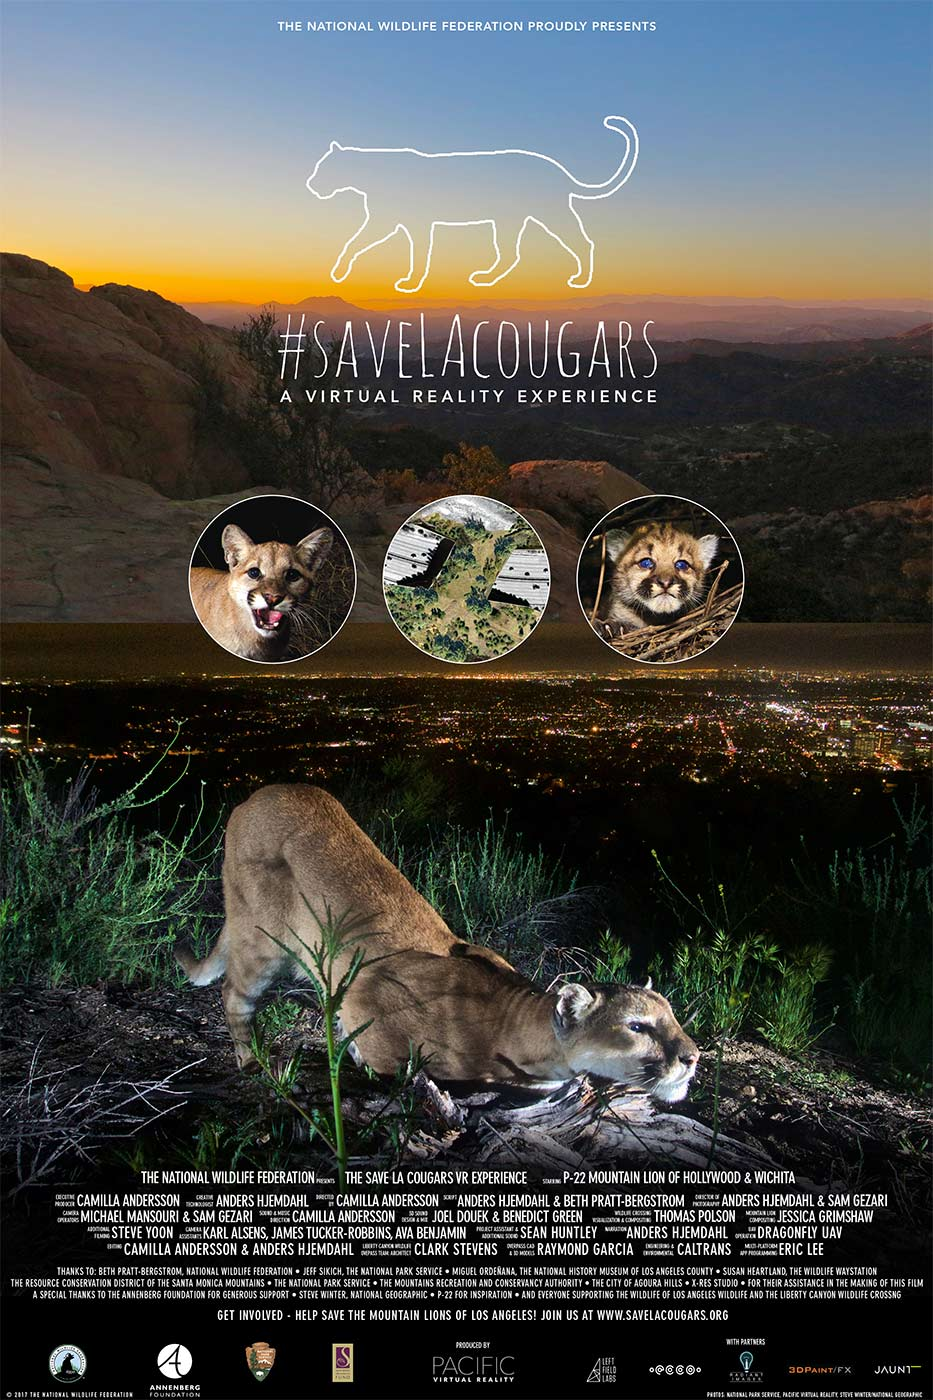 Saving the mountain lions of Los Angeles | Pacific Virtual Reality